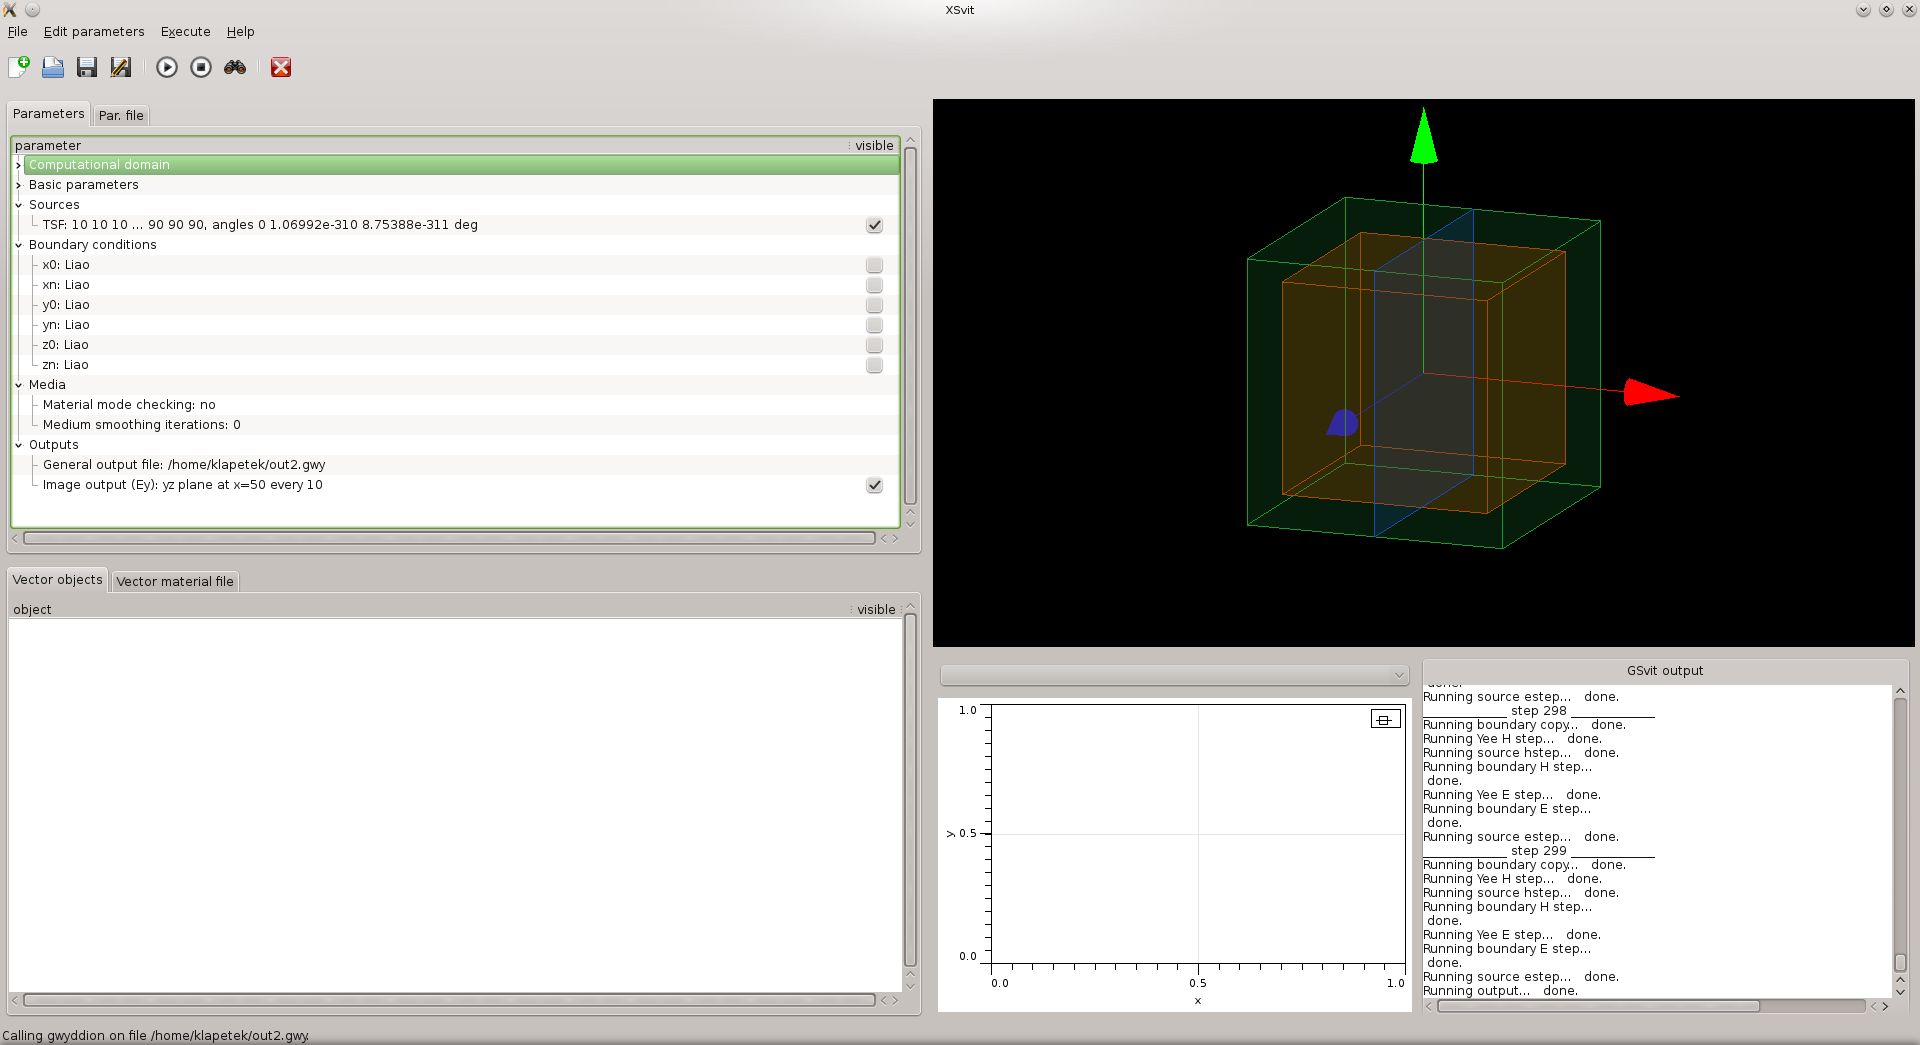 gsvit - open source software FDTD solver with graphics card